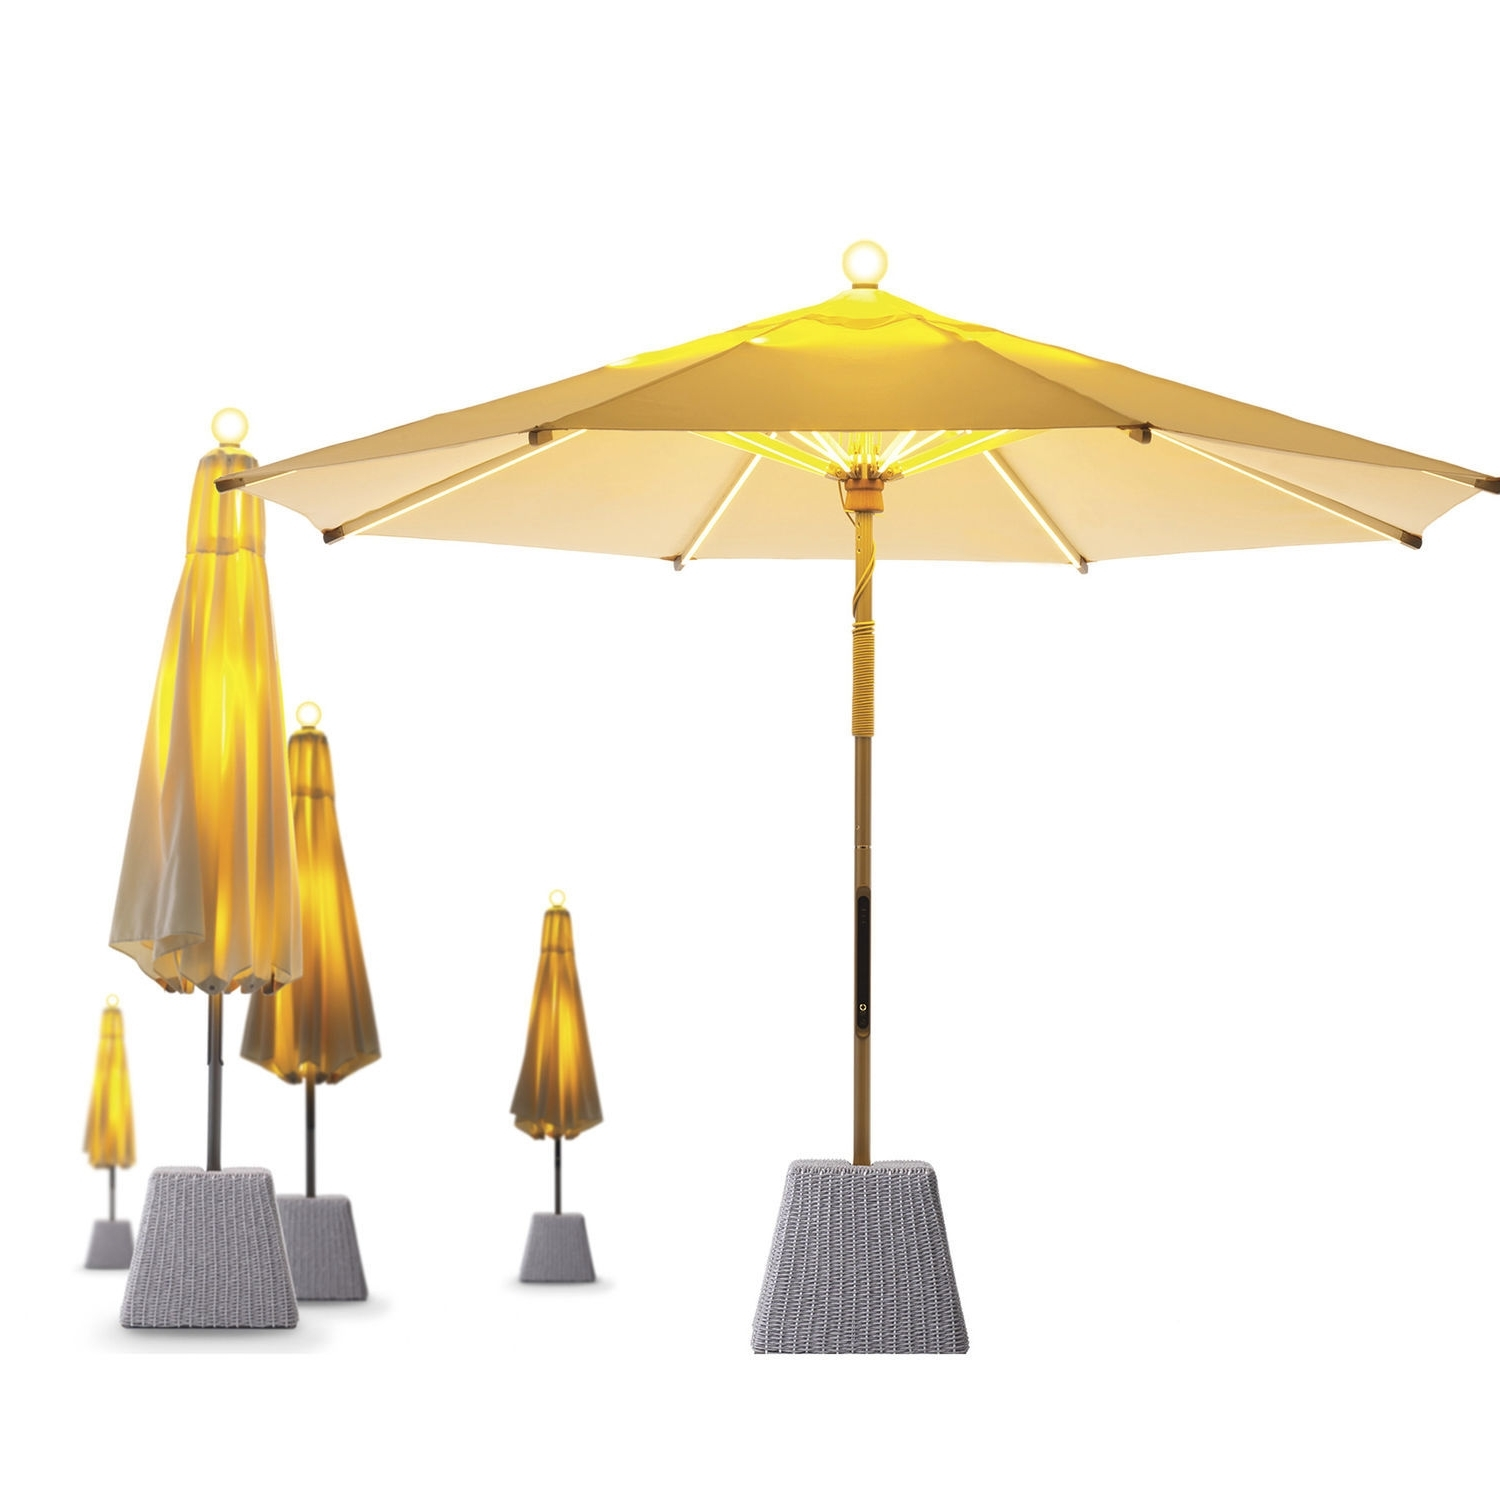 Commercial Patio Umbrella / Teak / Aluminum / With Heater – Ni For Fashionable Sunbrella Patio Umbrella With Lights (View 4 of 20)